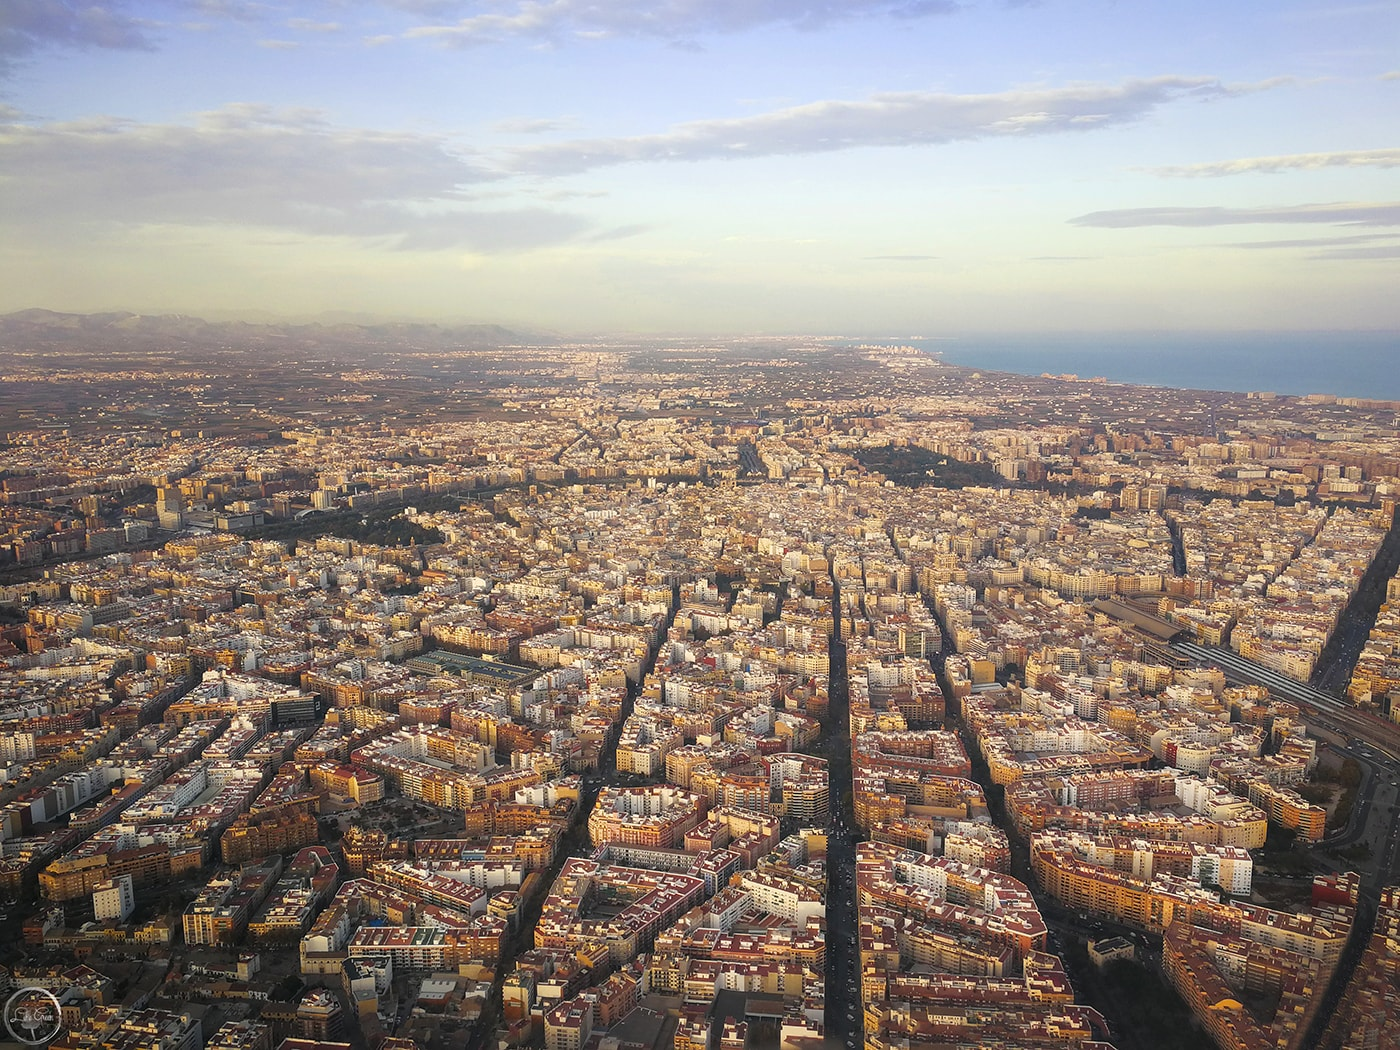 Valencia, Spain from above